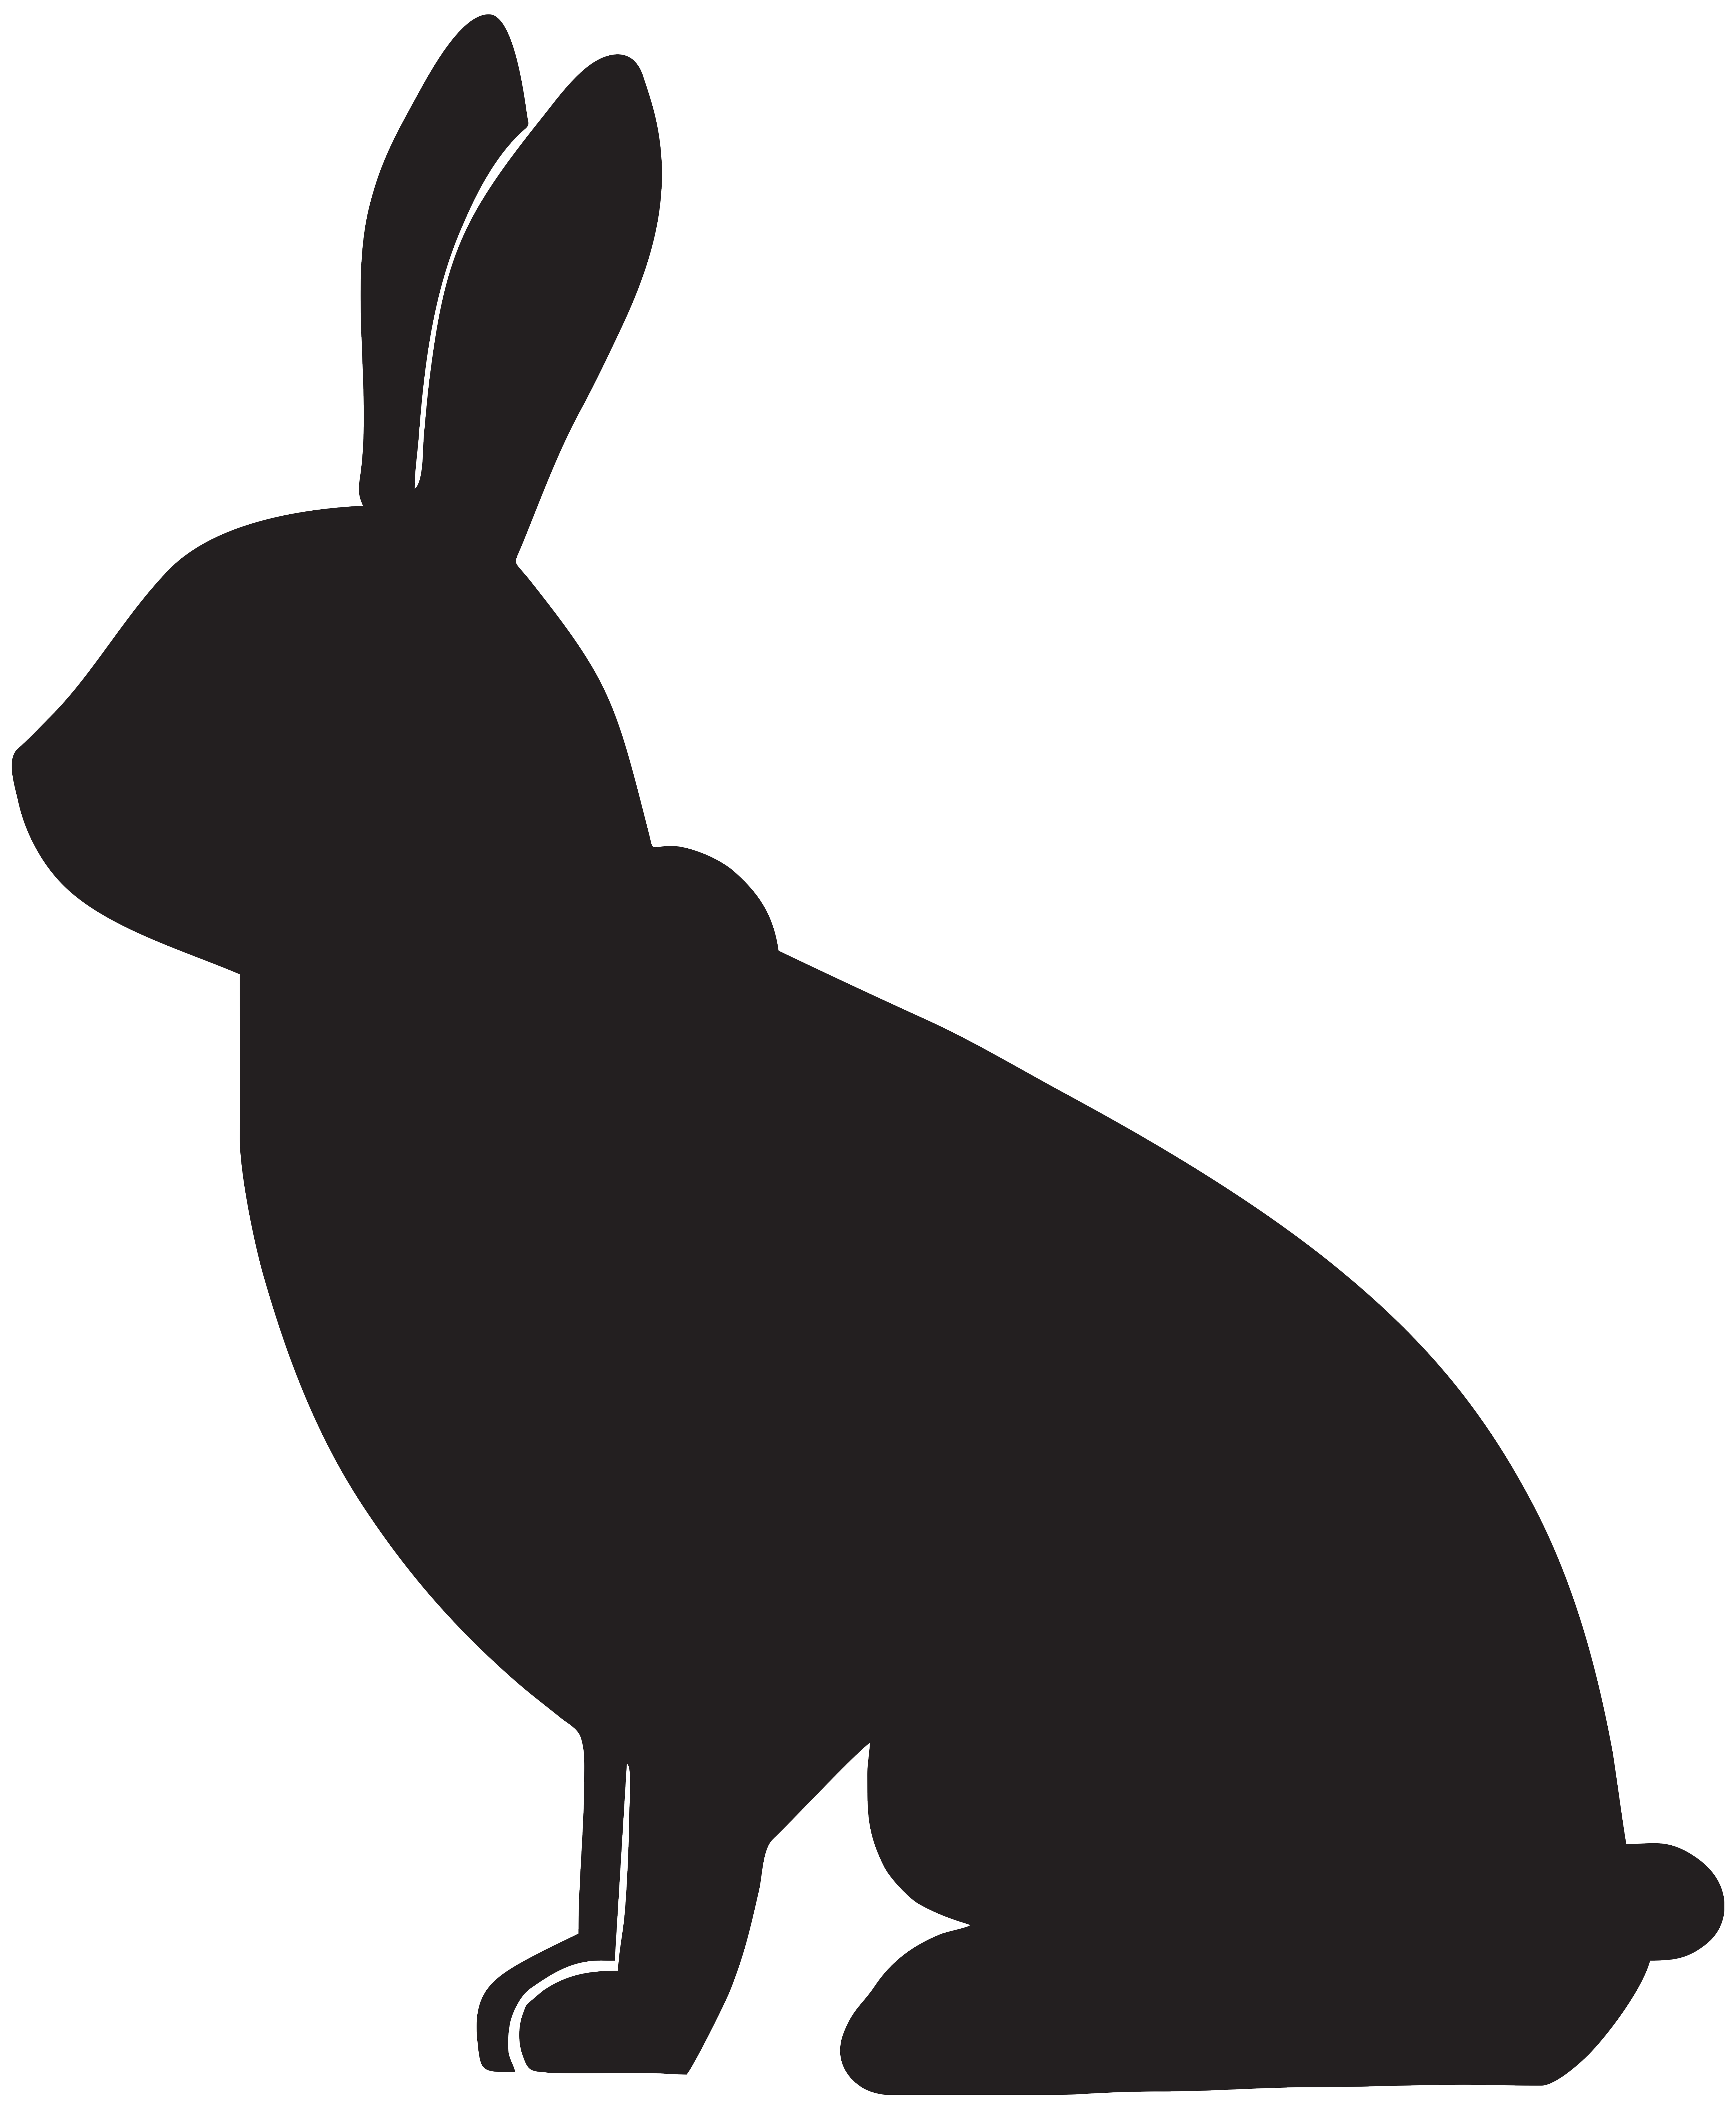 clipart image bunny silhouette - photo #33